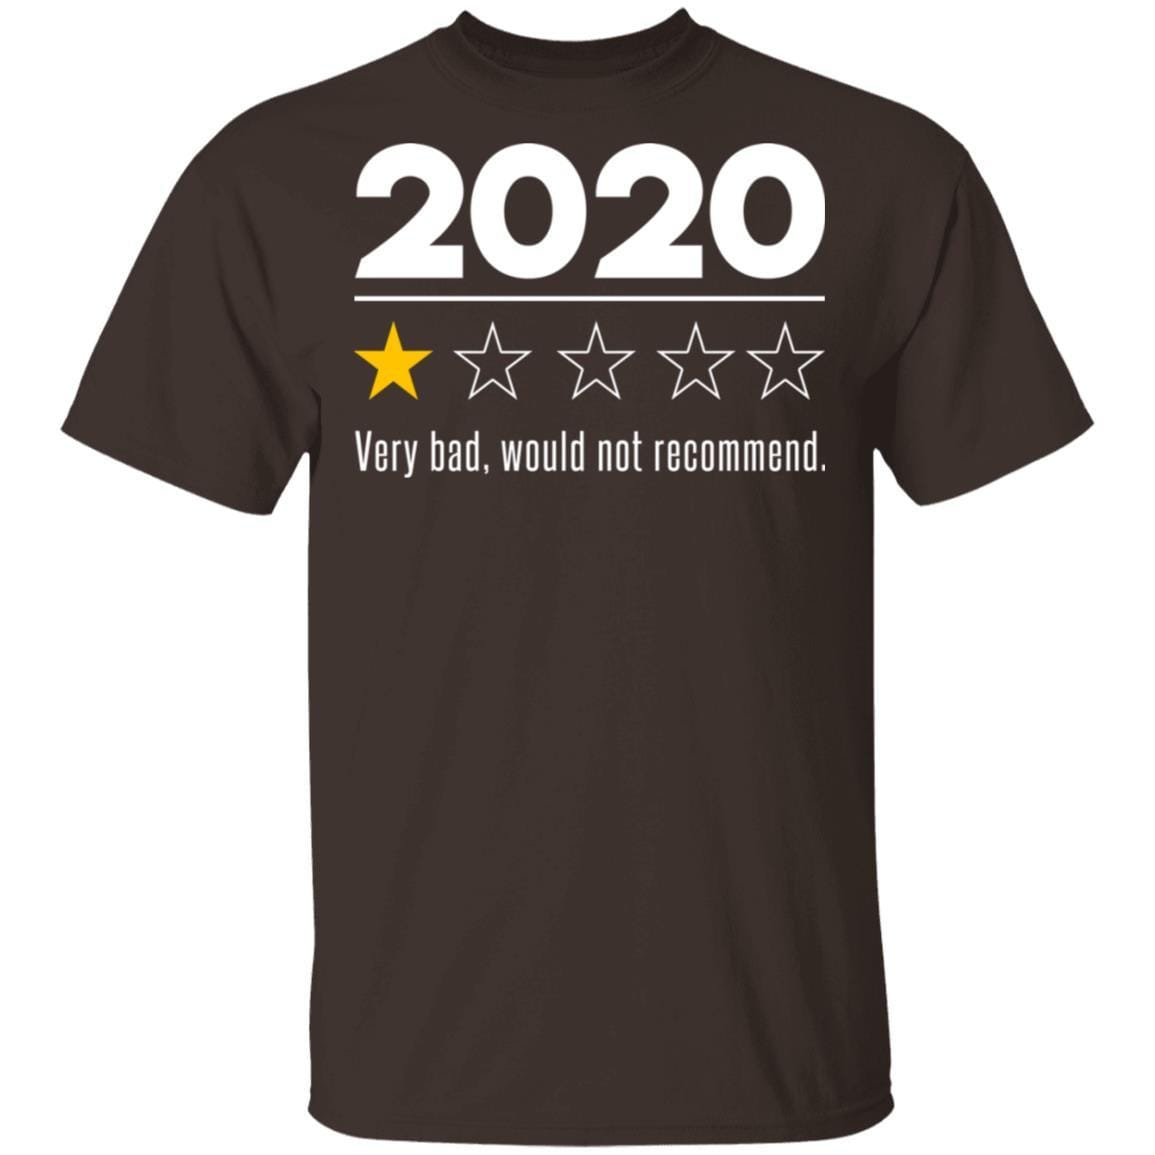 2020 This Year Very Bad Would Not Recommend T-Shirts, Hoodies 1049-9956-88282841-48152 - Tee Ript